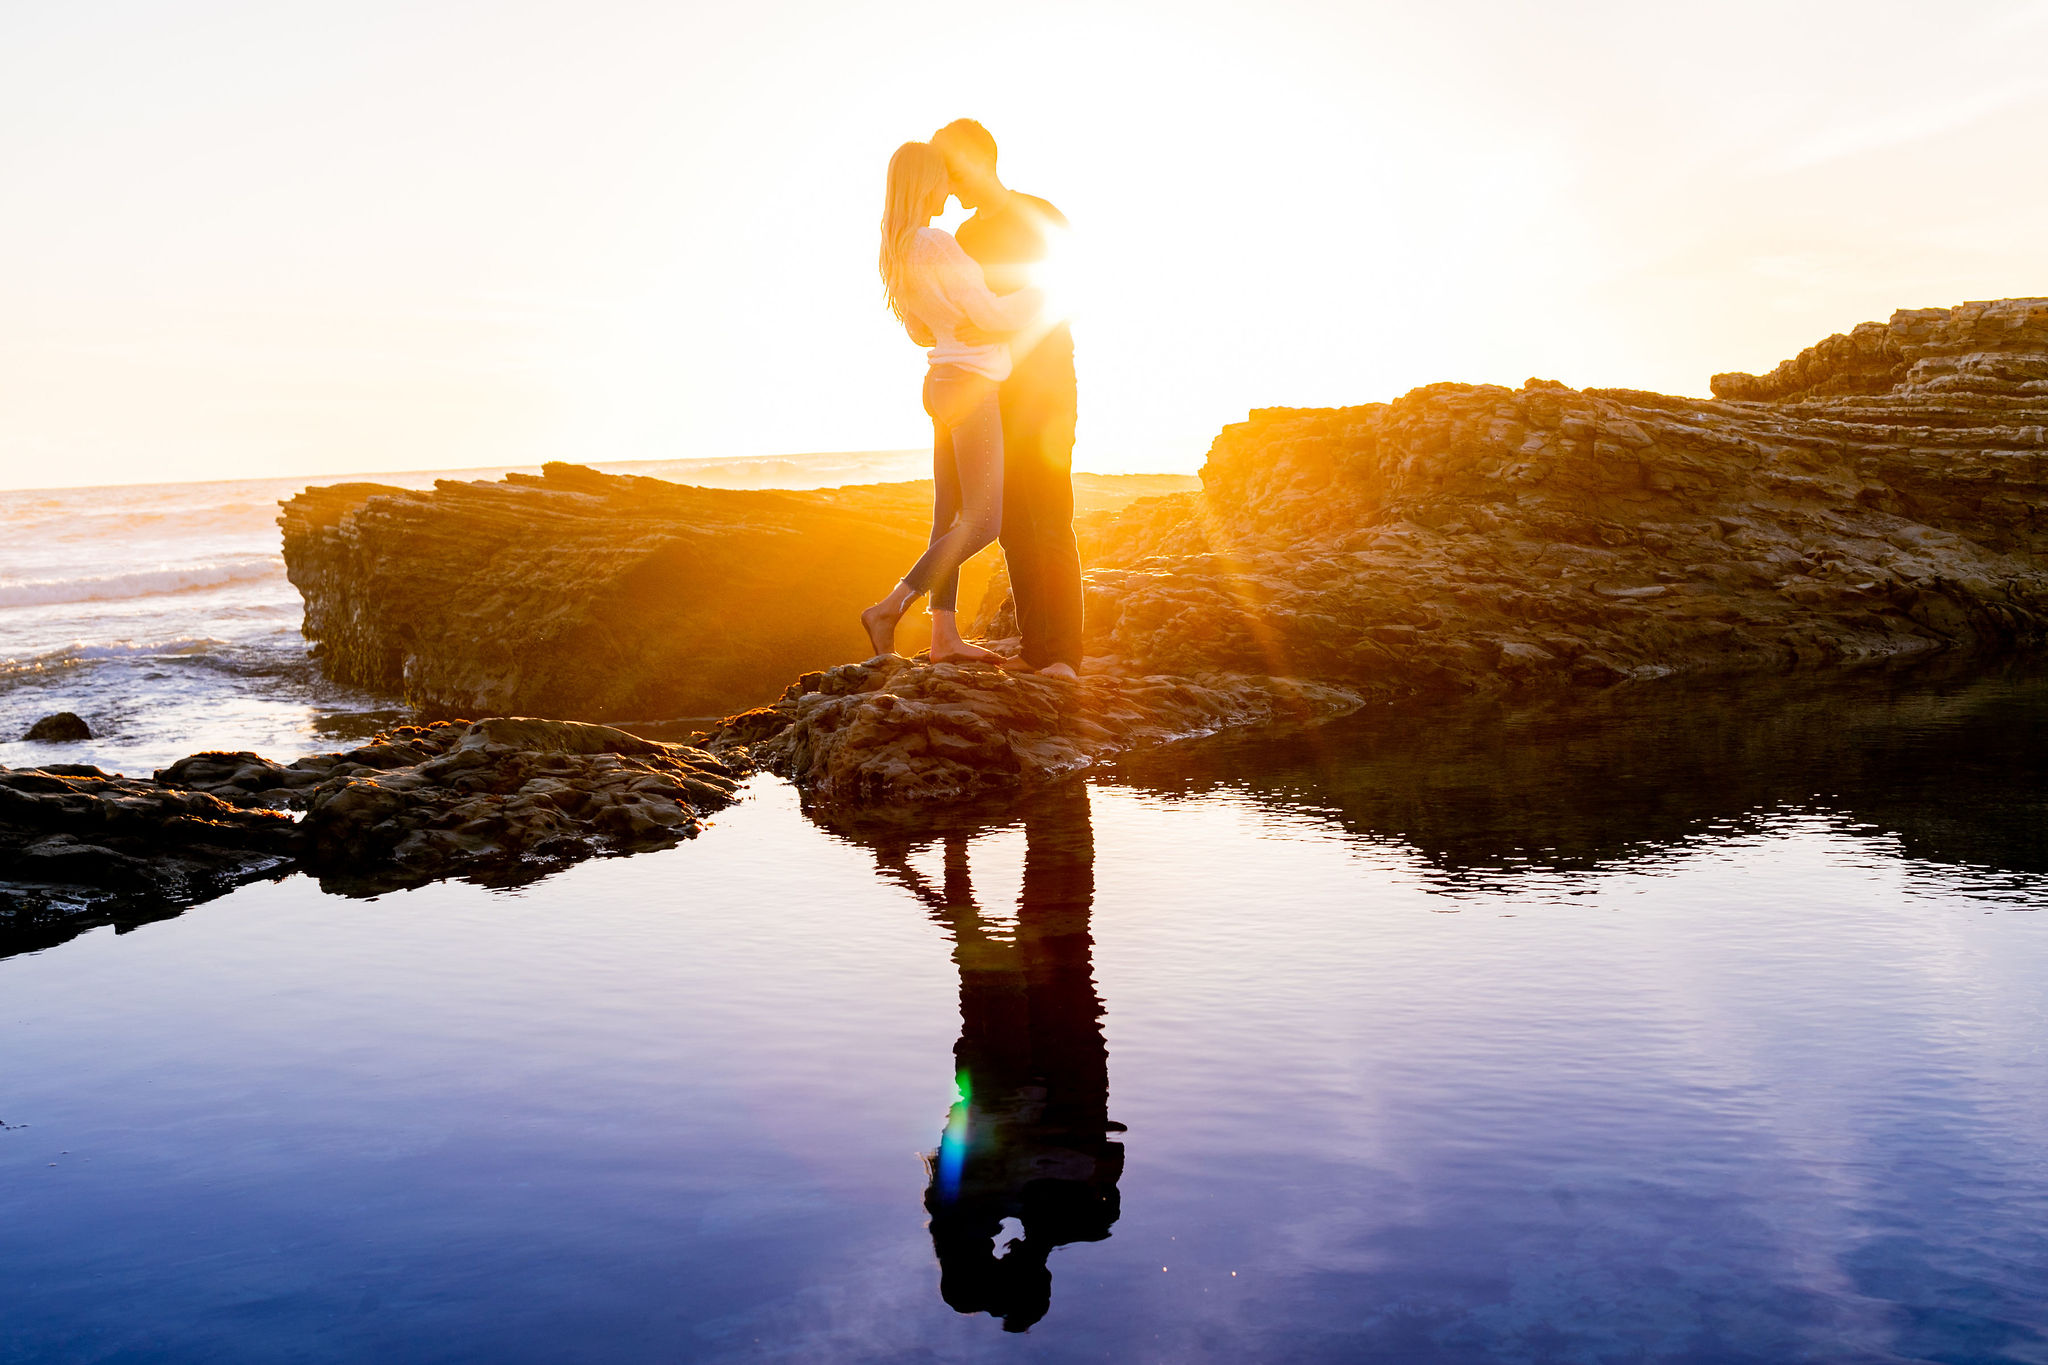 Montana De Oro Engagement - Kylie & Chad